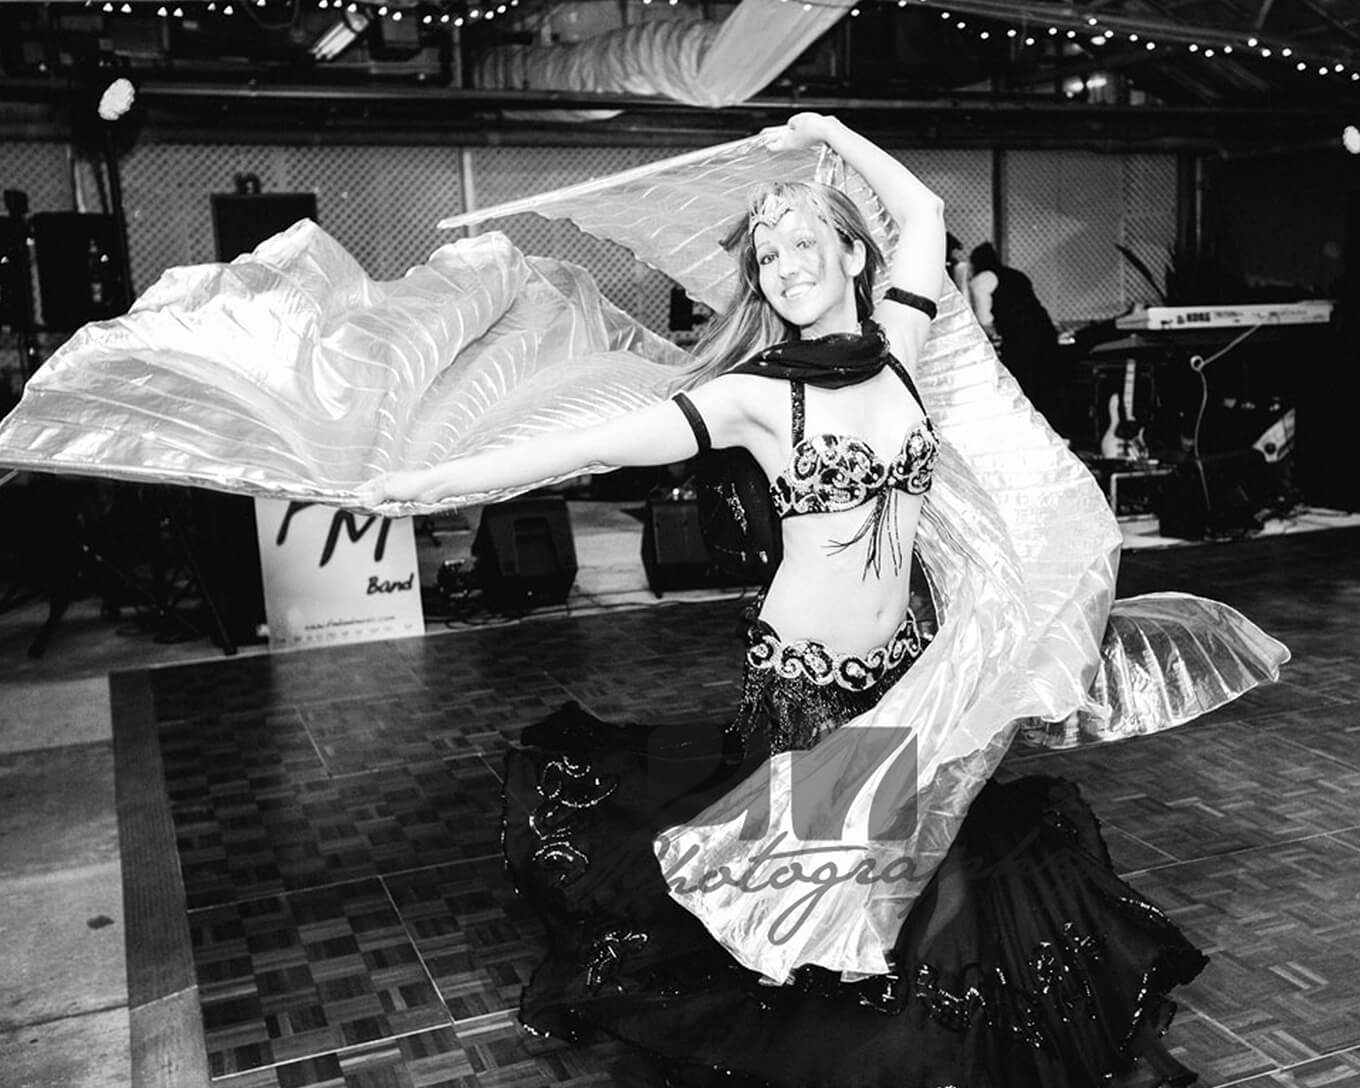 Donna wearing her isis wings belly dance outfit. Performing at a wedding event.